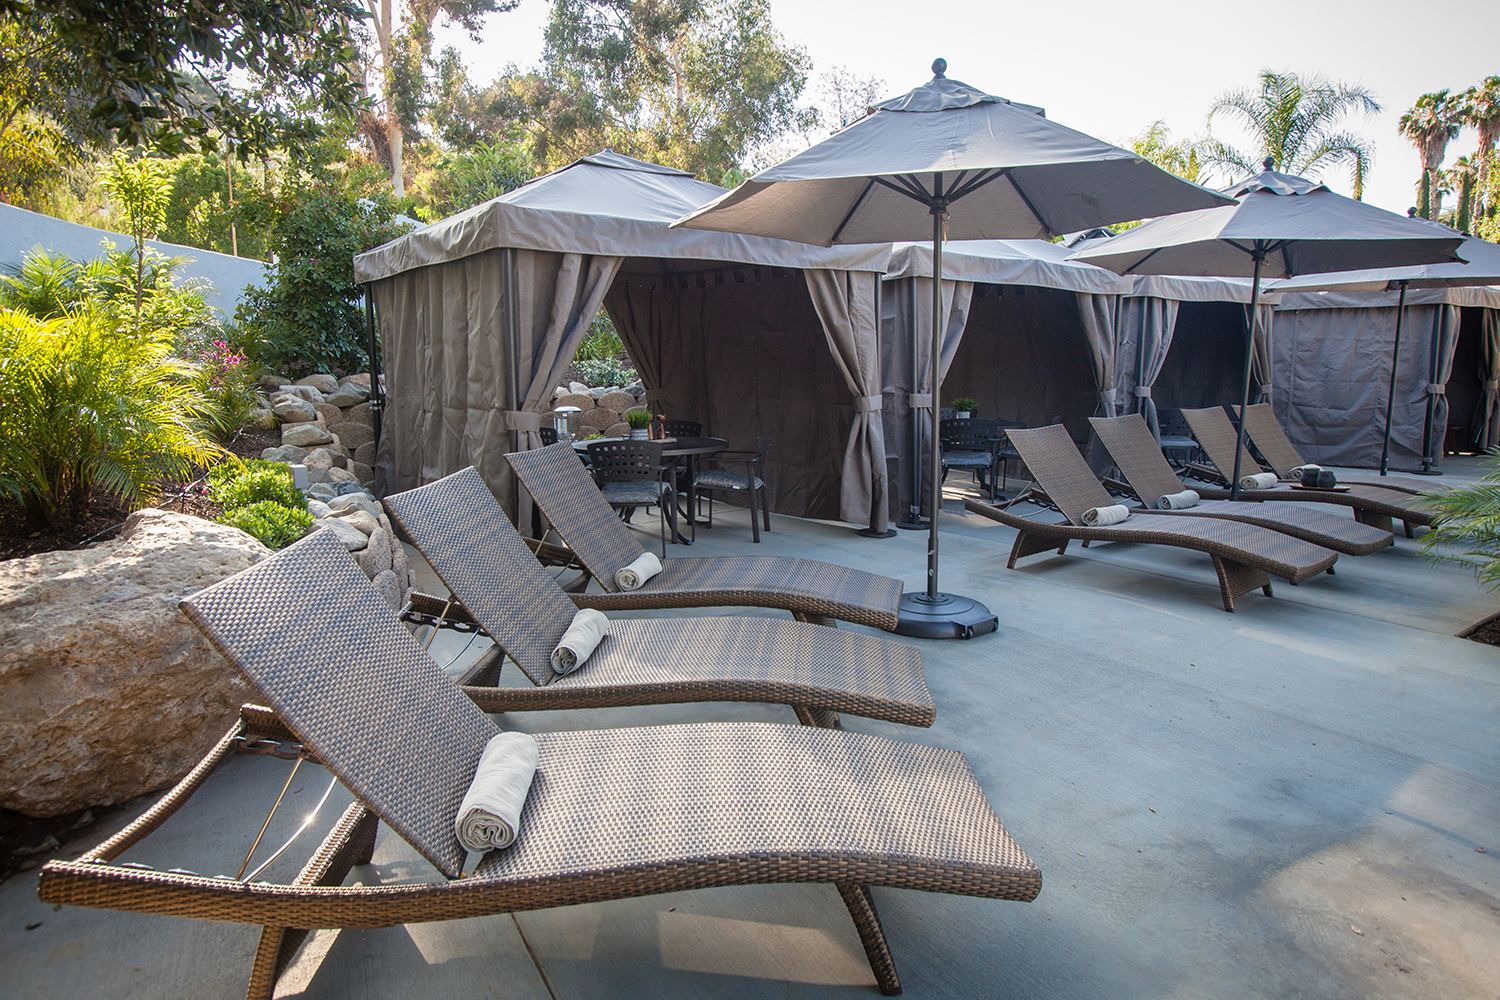 Guests of the Secret Garden can also reserve a private cabana.